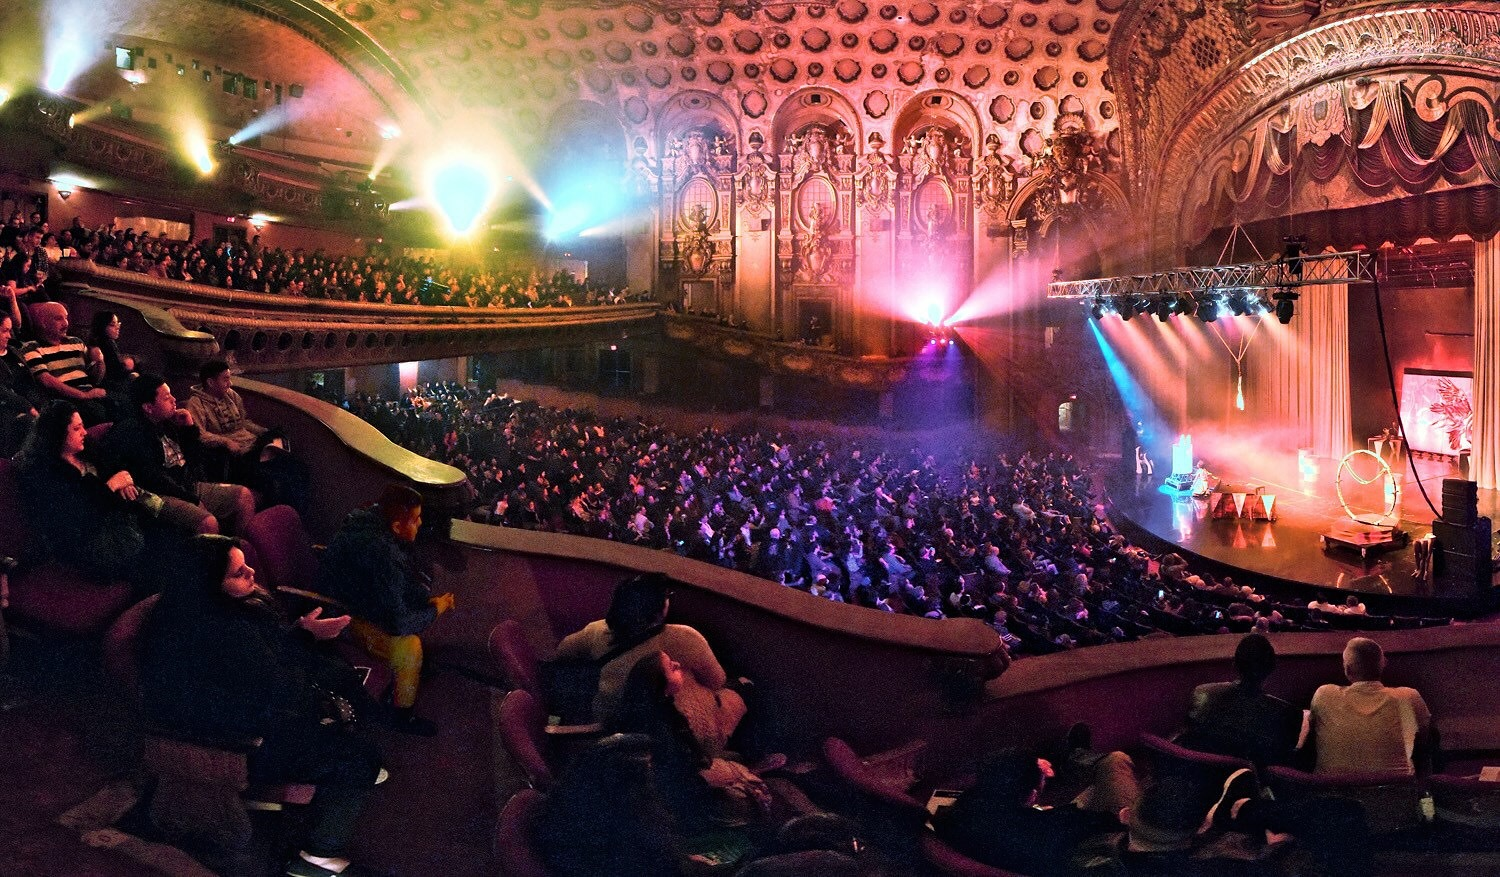 Lucent Dossier Los Angeles Theater Broadway photog Wendell Benedetti big Crowd .JPG